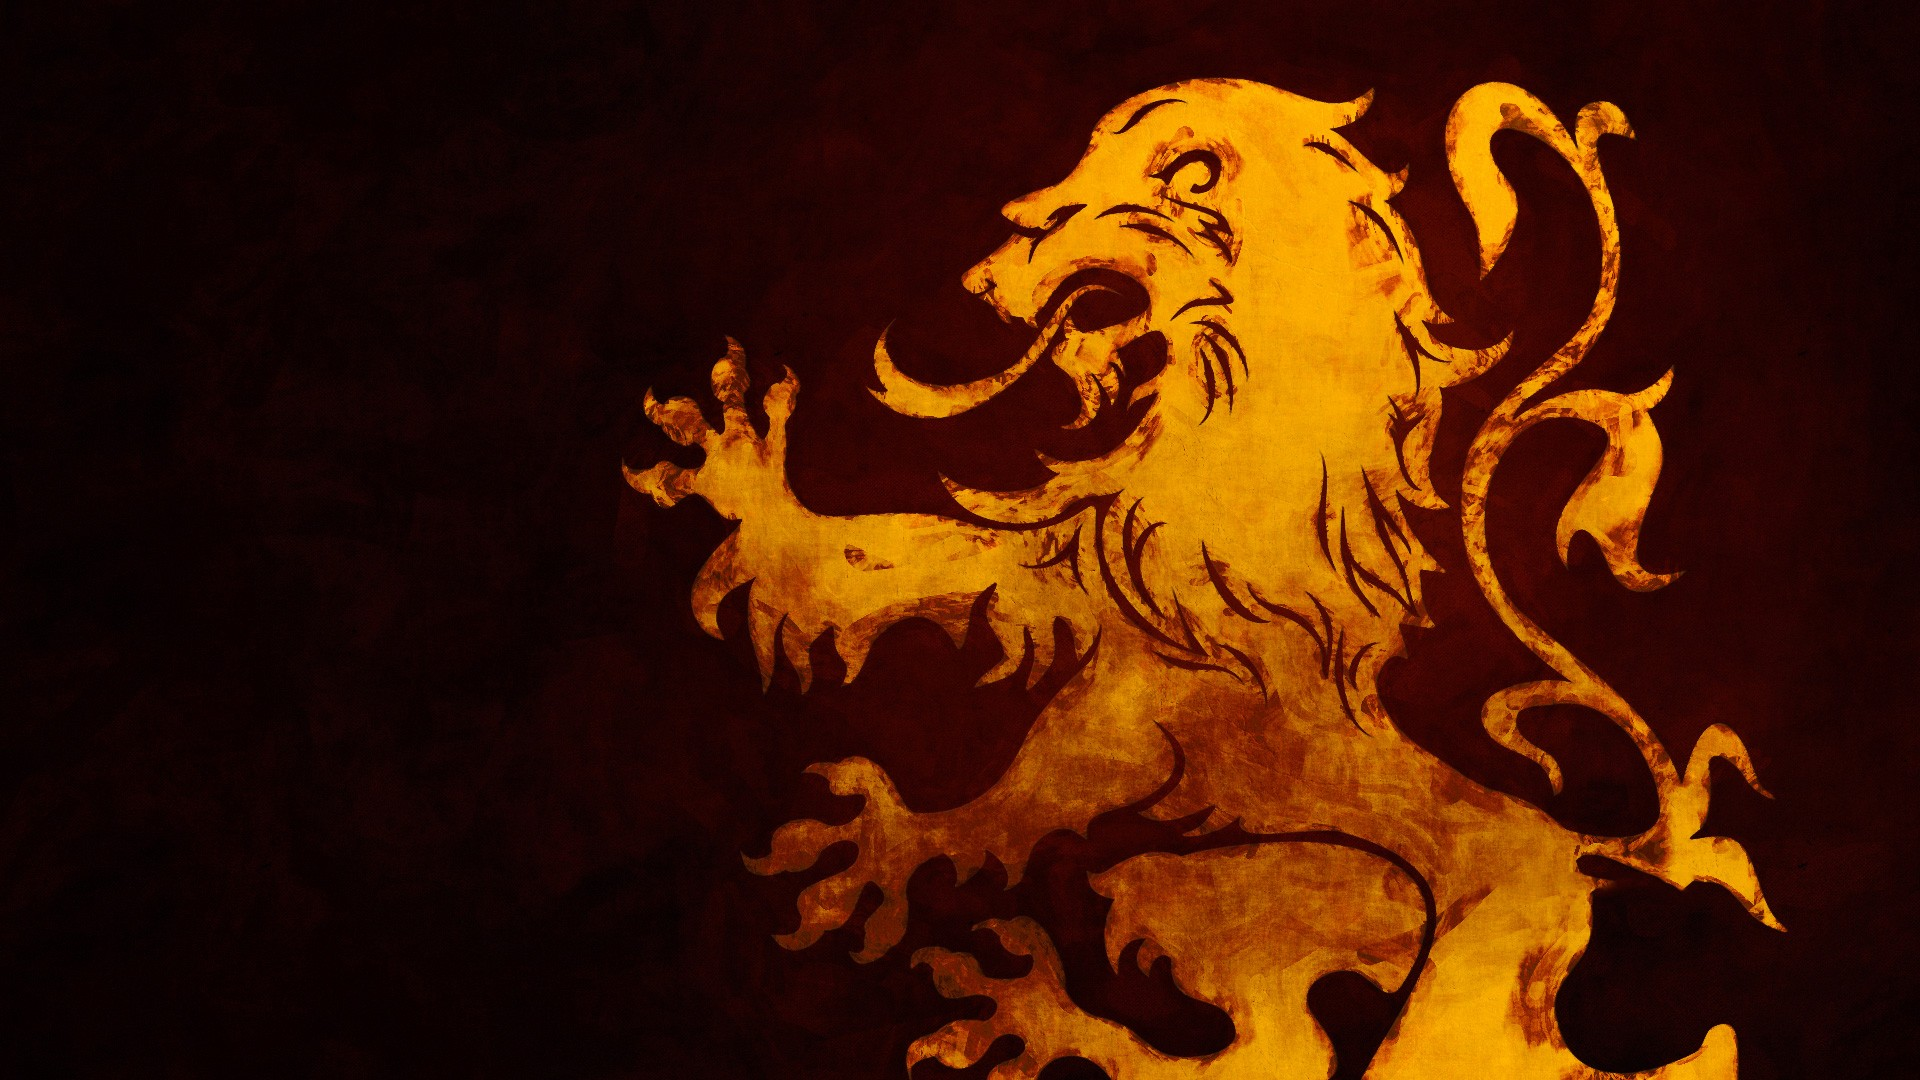 Game of Thrones TV Series Backgrounds   Wallpaper High Definition 1920x1080